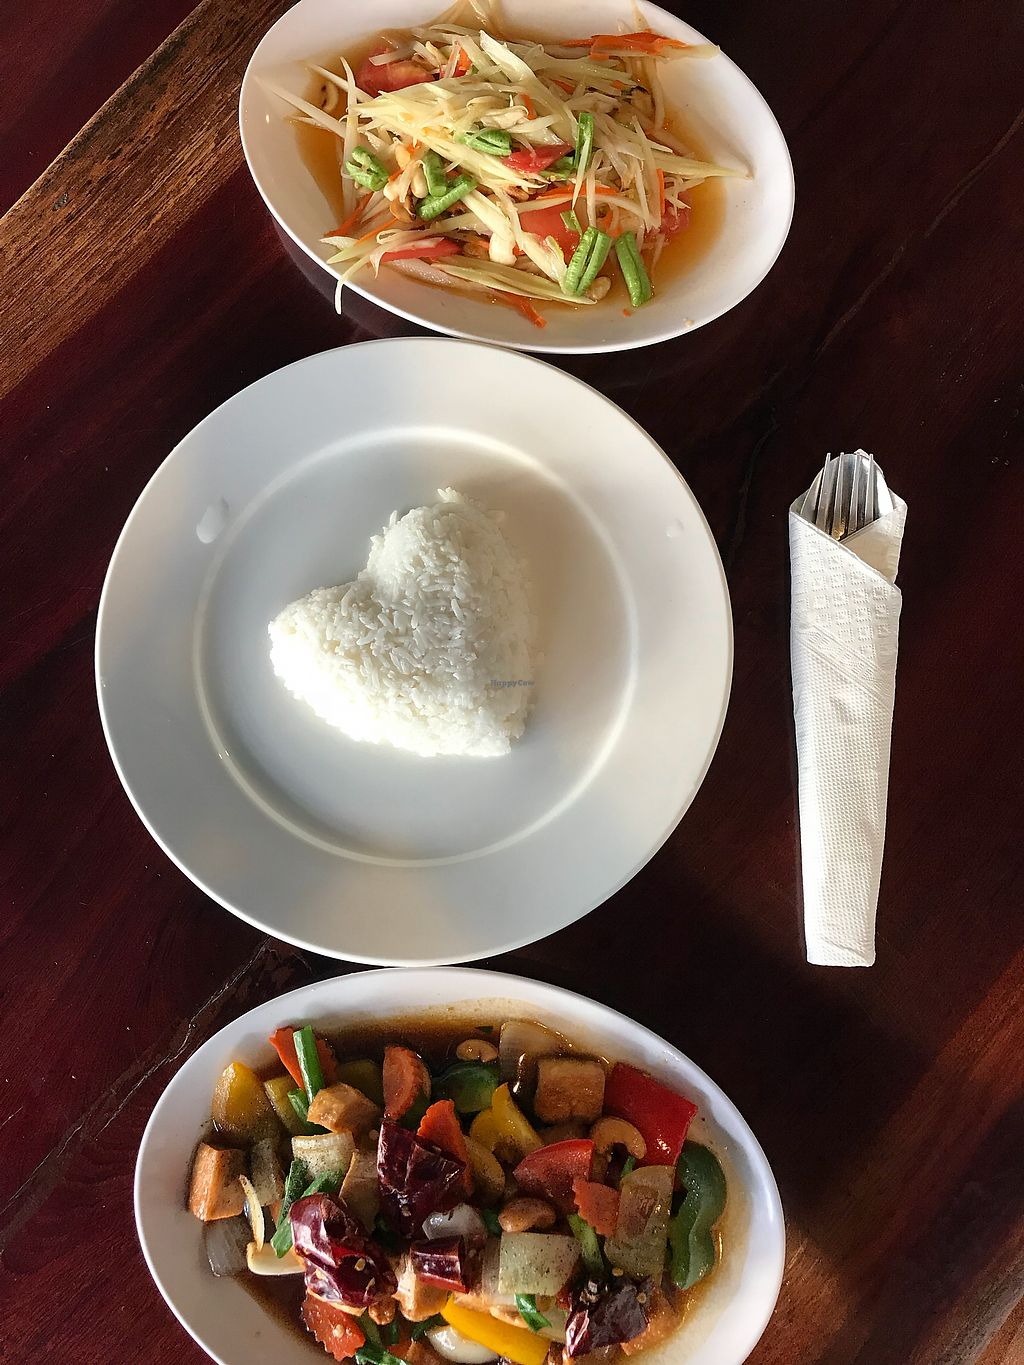 "Photo of Yo Green Restaurant  by <a href=""/members/profile/TravelVeggie"">TravelVeggie</a> <br/>Tofu cashew and papaya salad  <br/> December 11, 2017  - <a href='/contact/abuse/image/87150/334580'>Report</a>"